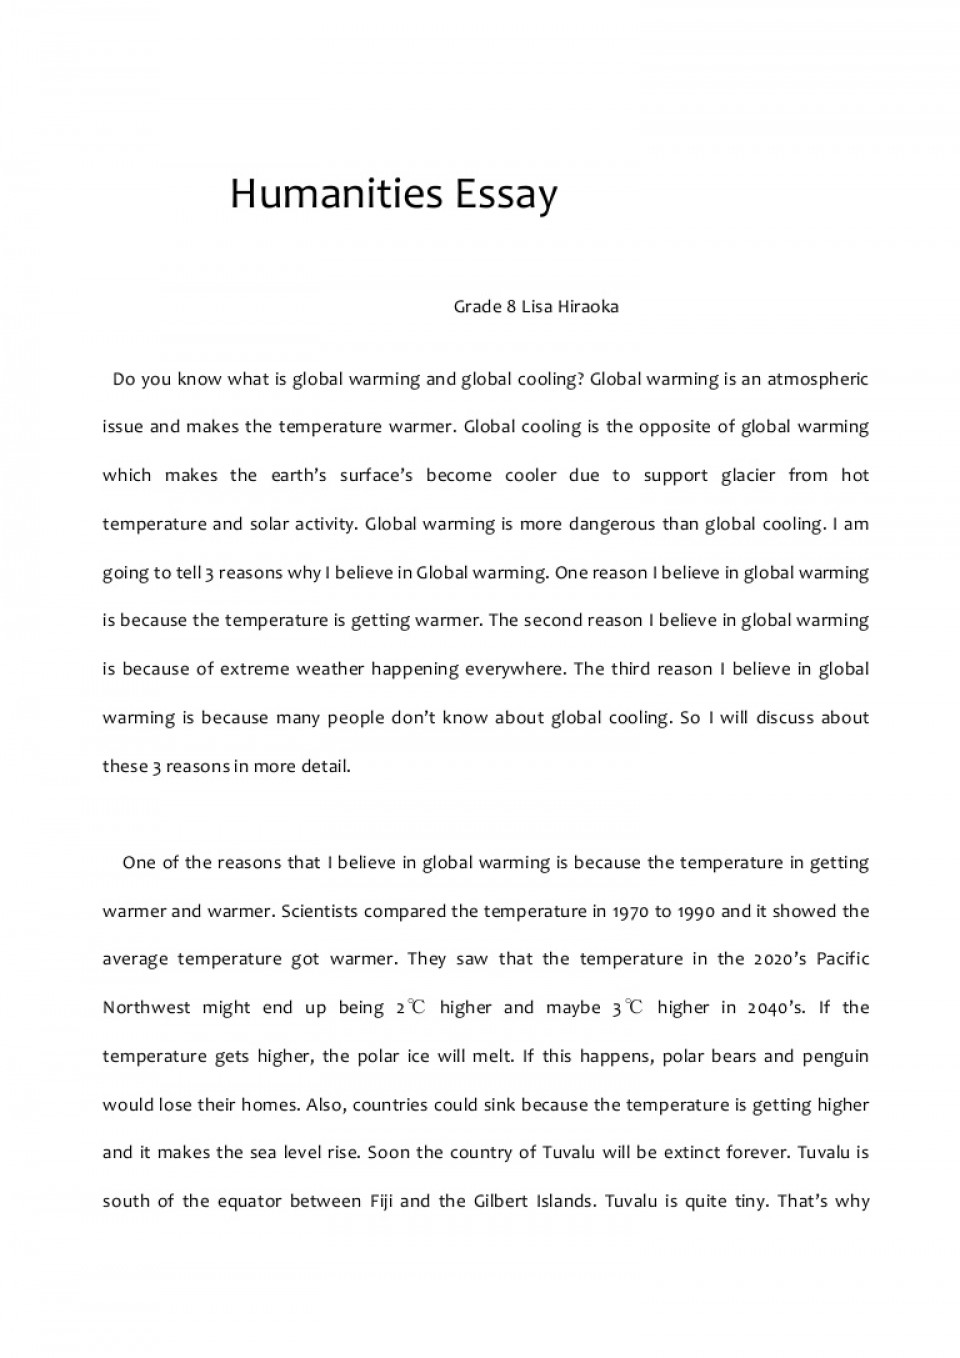 006 Global Warming Essay Humanitiesessay Phpapp02 Thumbnail Unusual Hook Conclusion Outline 960